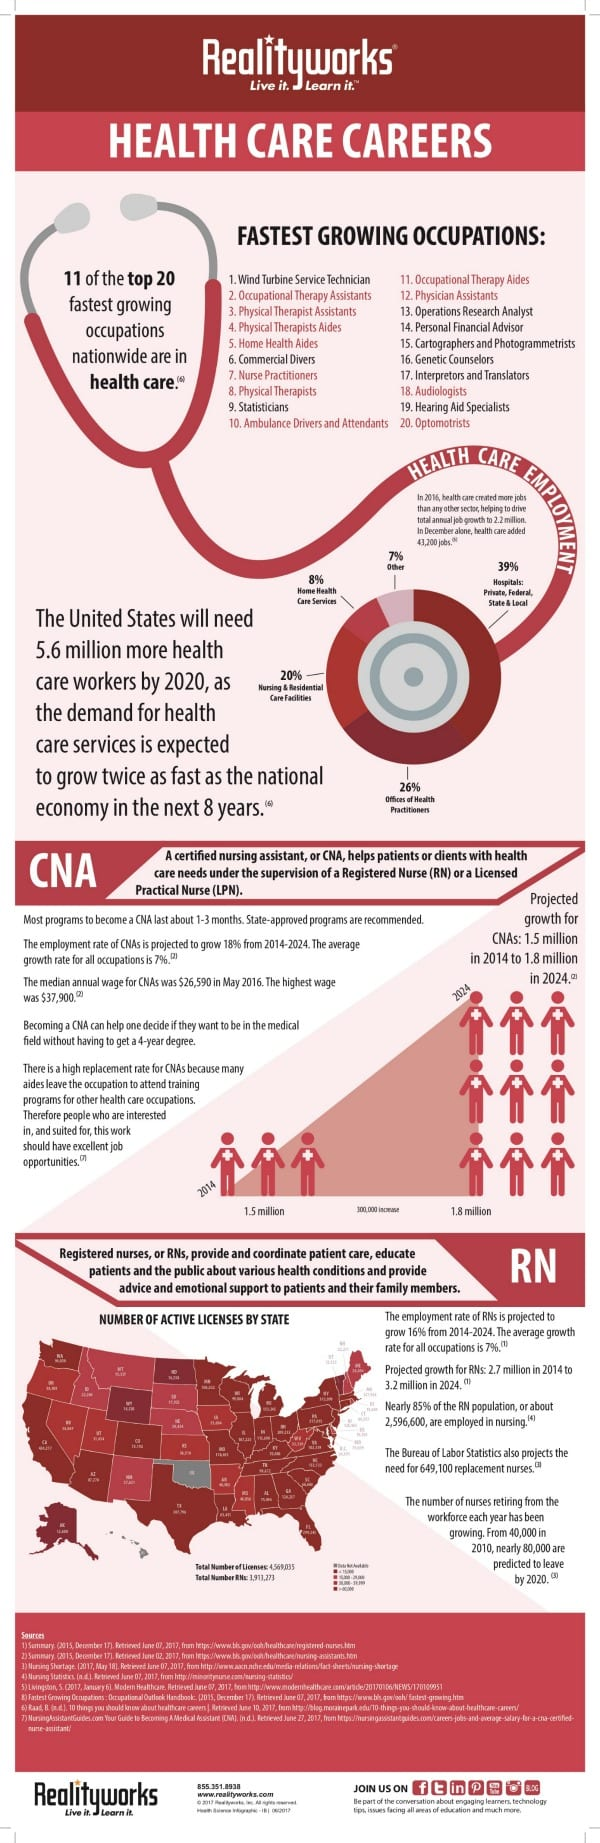 Health care careers infographic